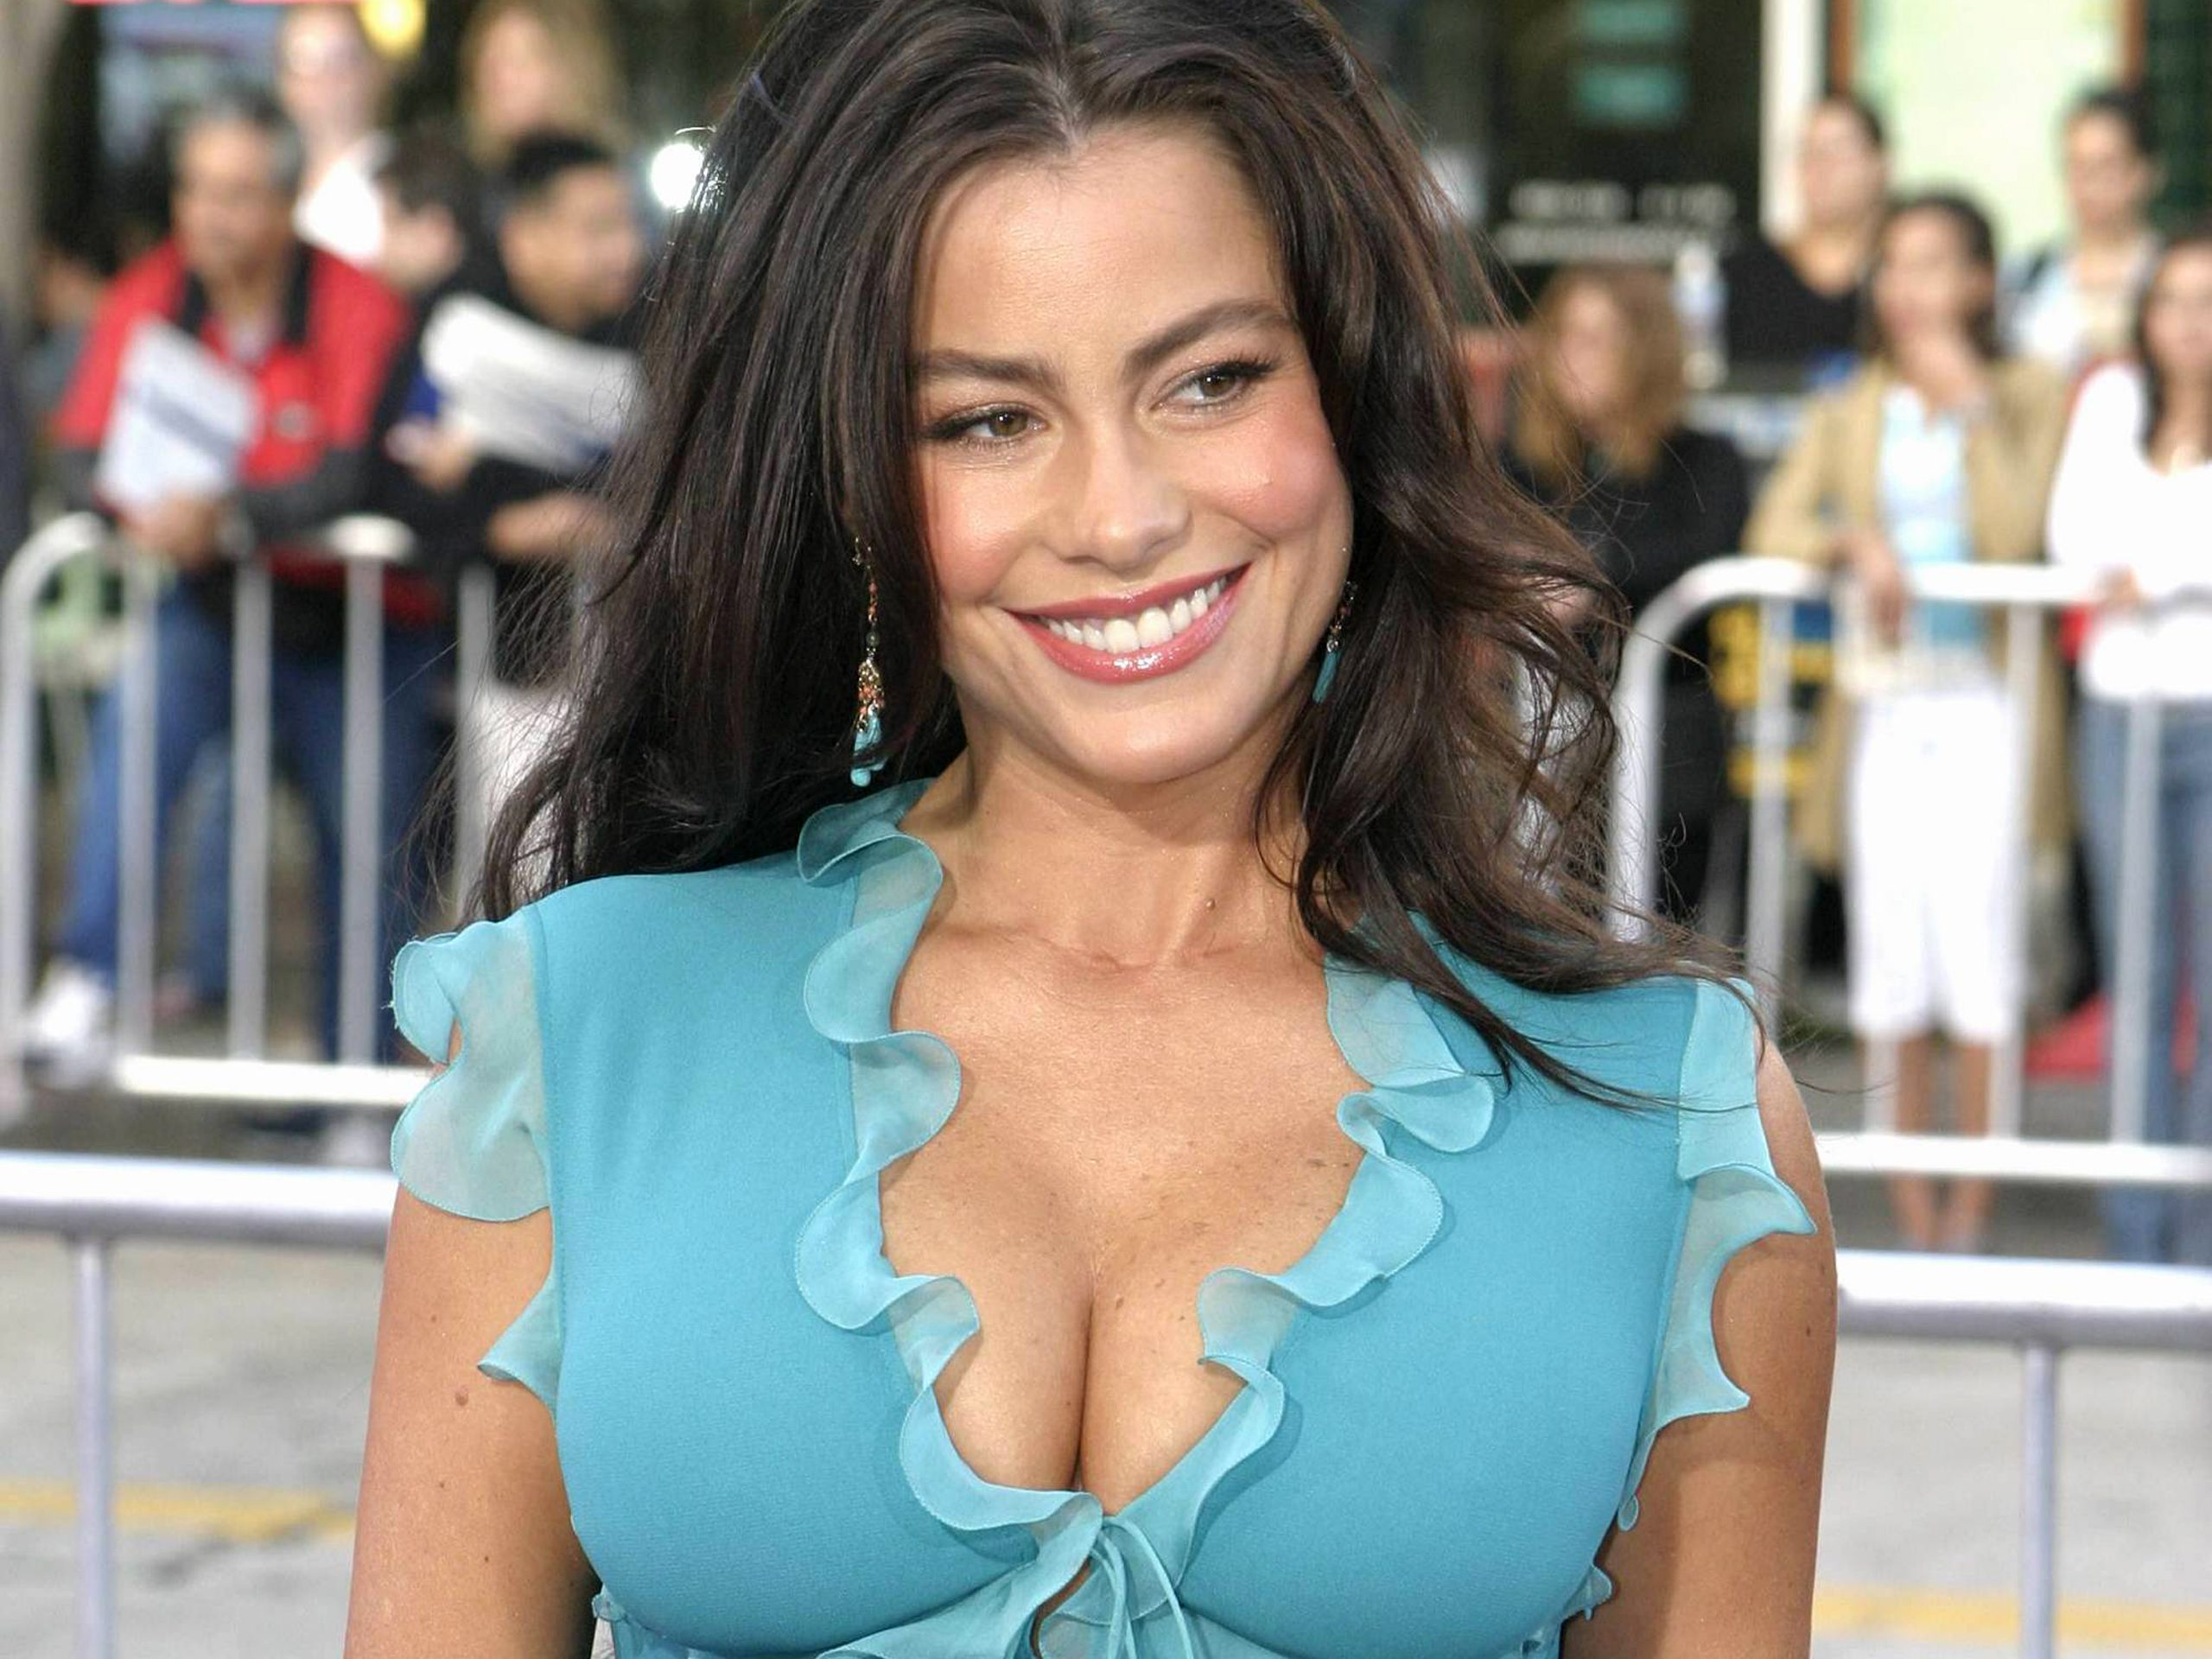 Sofia Vergara Soul Plane Modern Family Actress Gets Hollywood Walk Of Fame Star